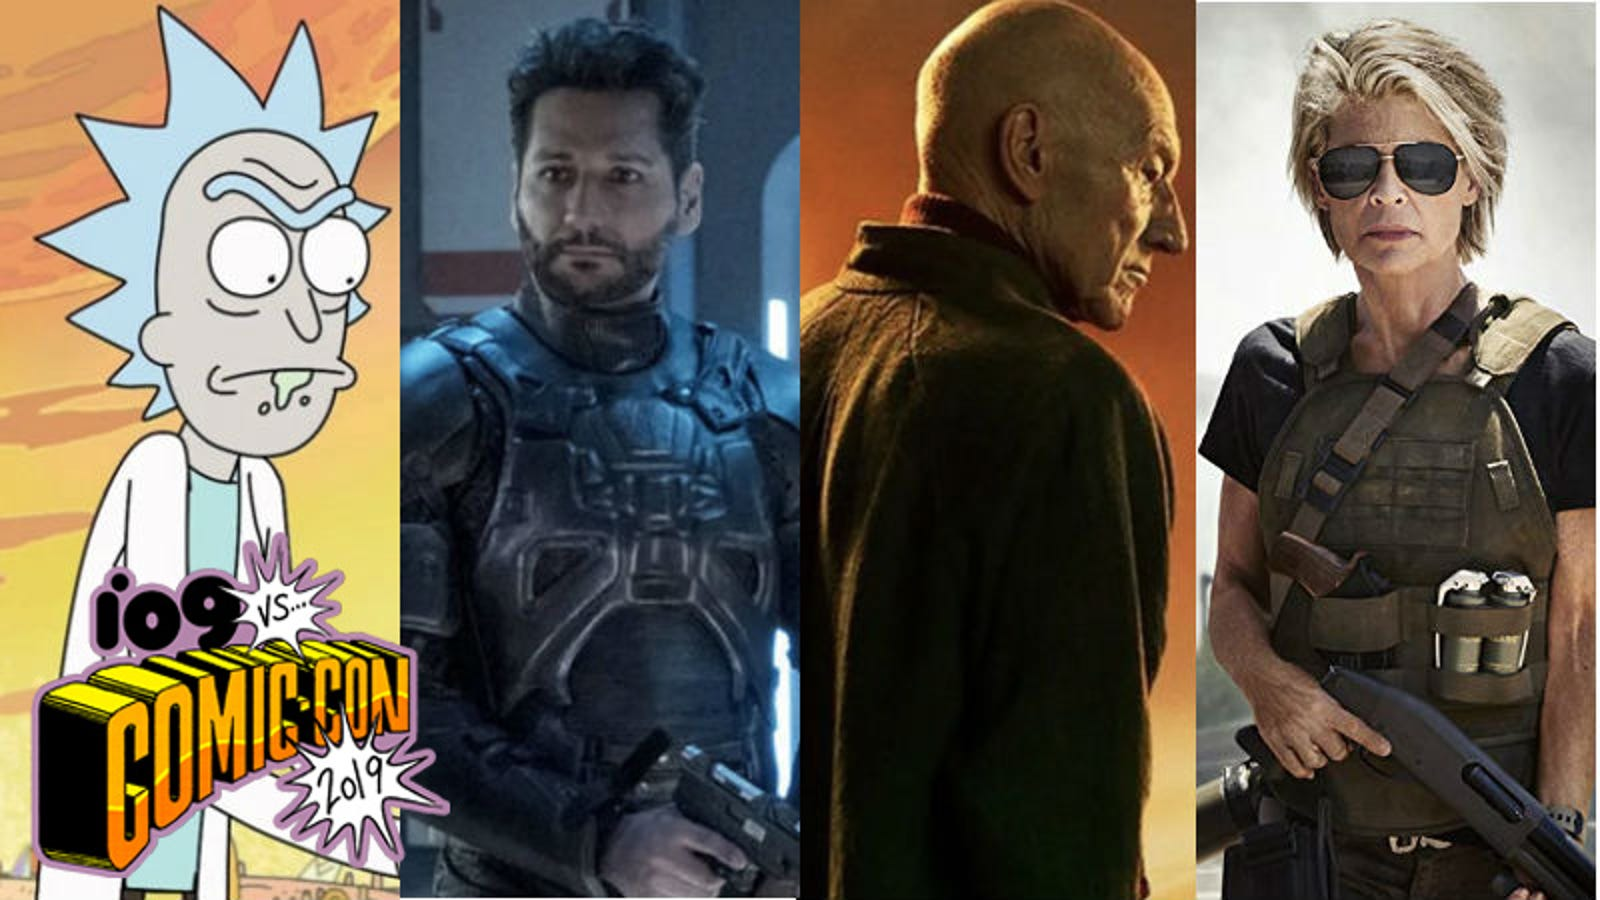 Comic Con 2019: All the Best TV and Movie Panels for Geeks